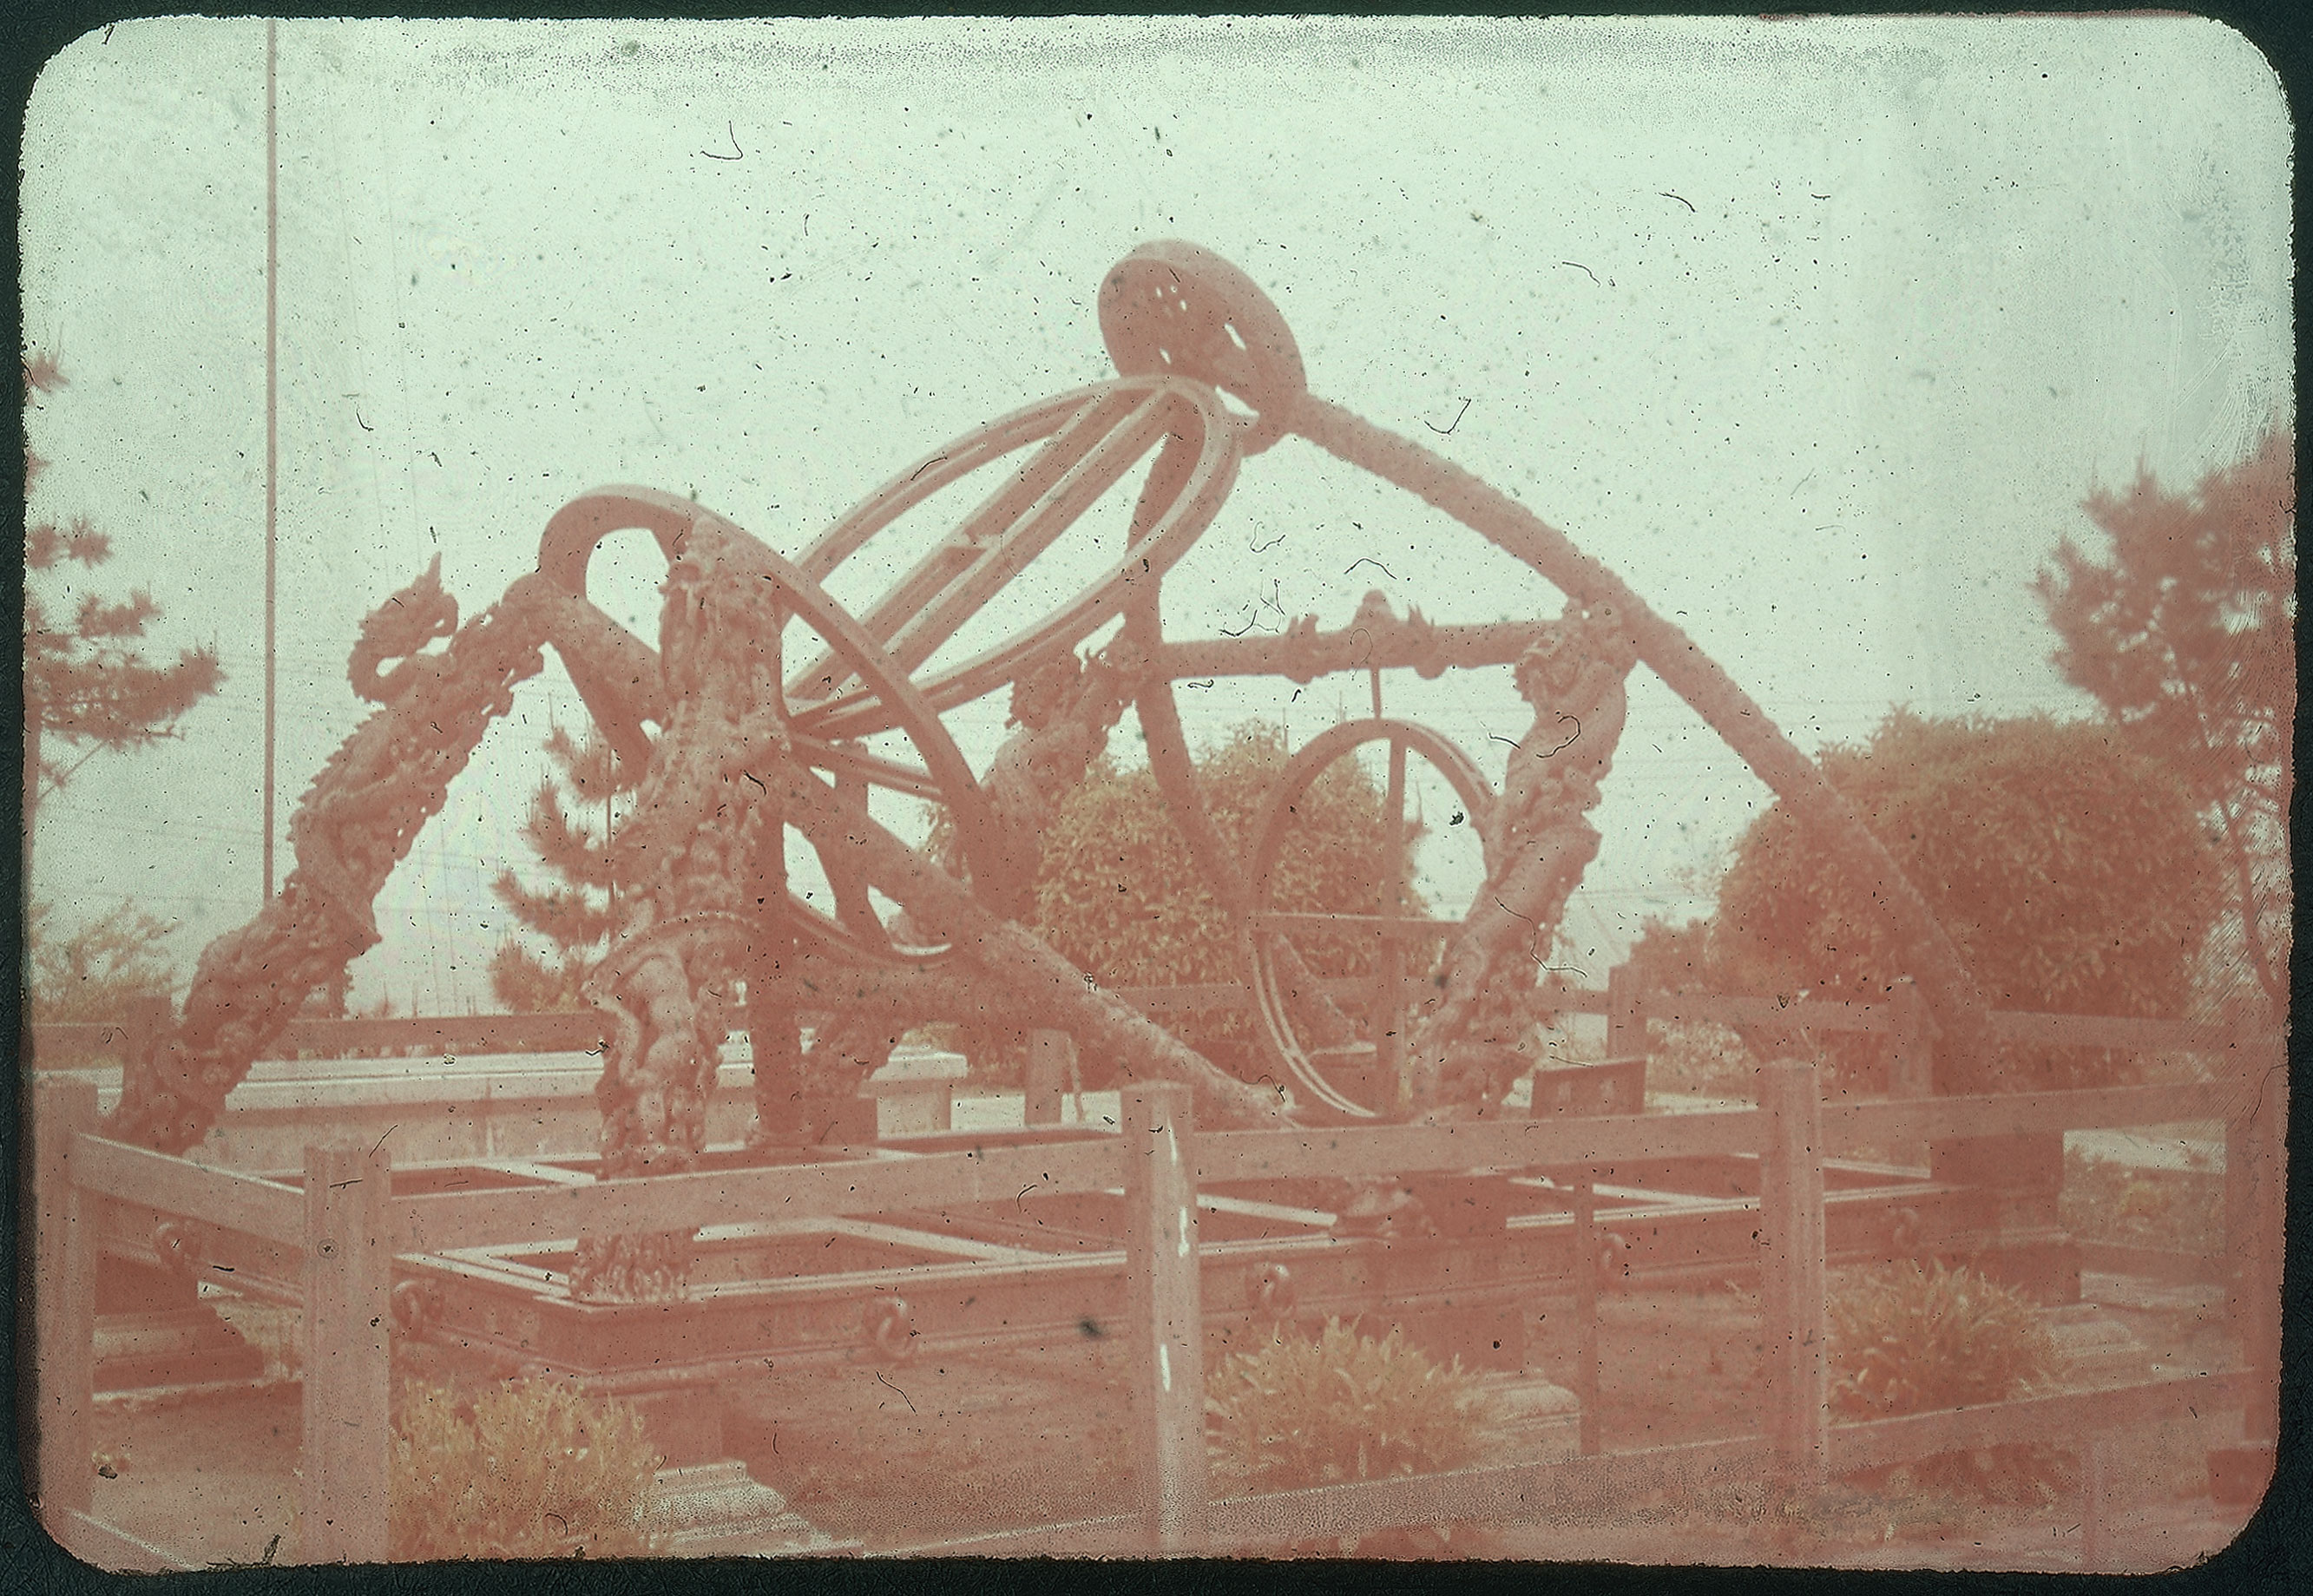 Hiller 09-072: Ancient Chinese astronomical instrument in Nanking